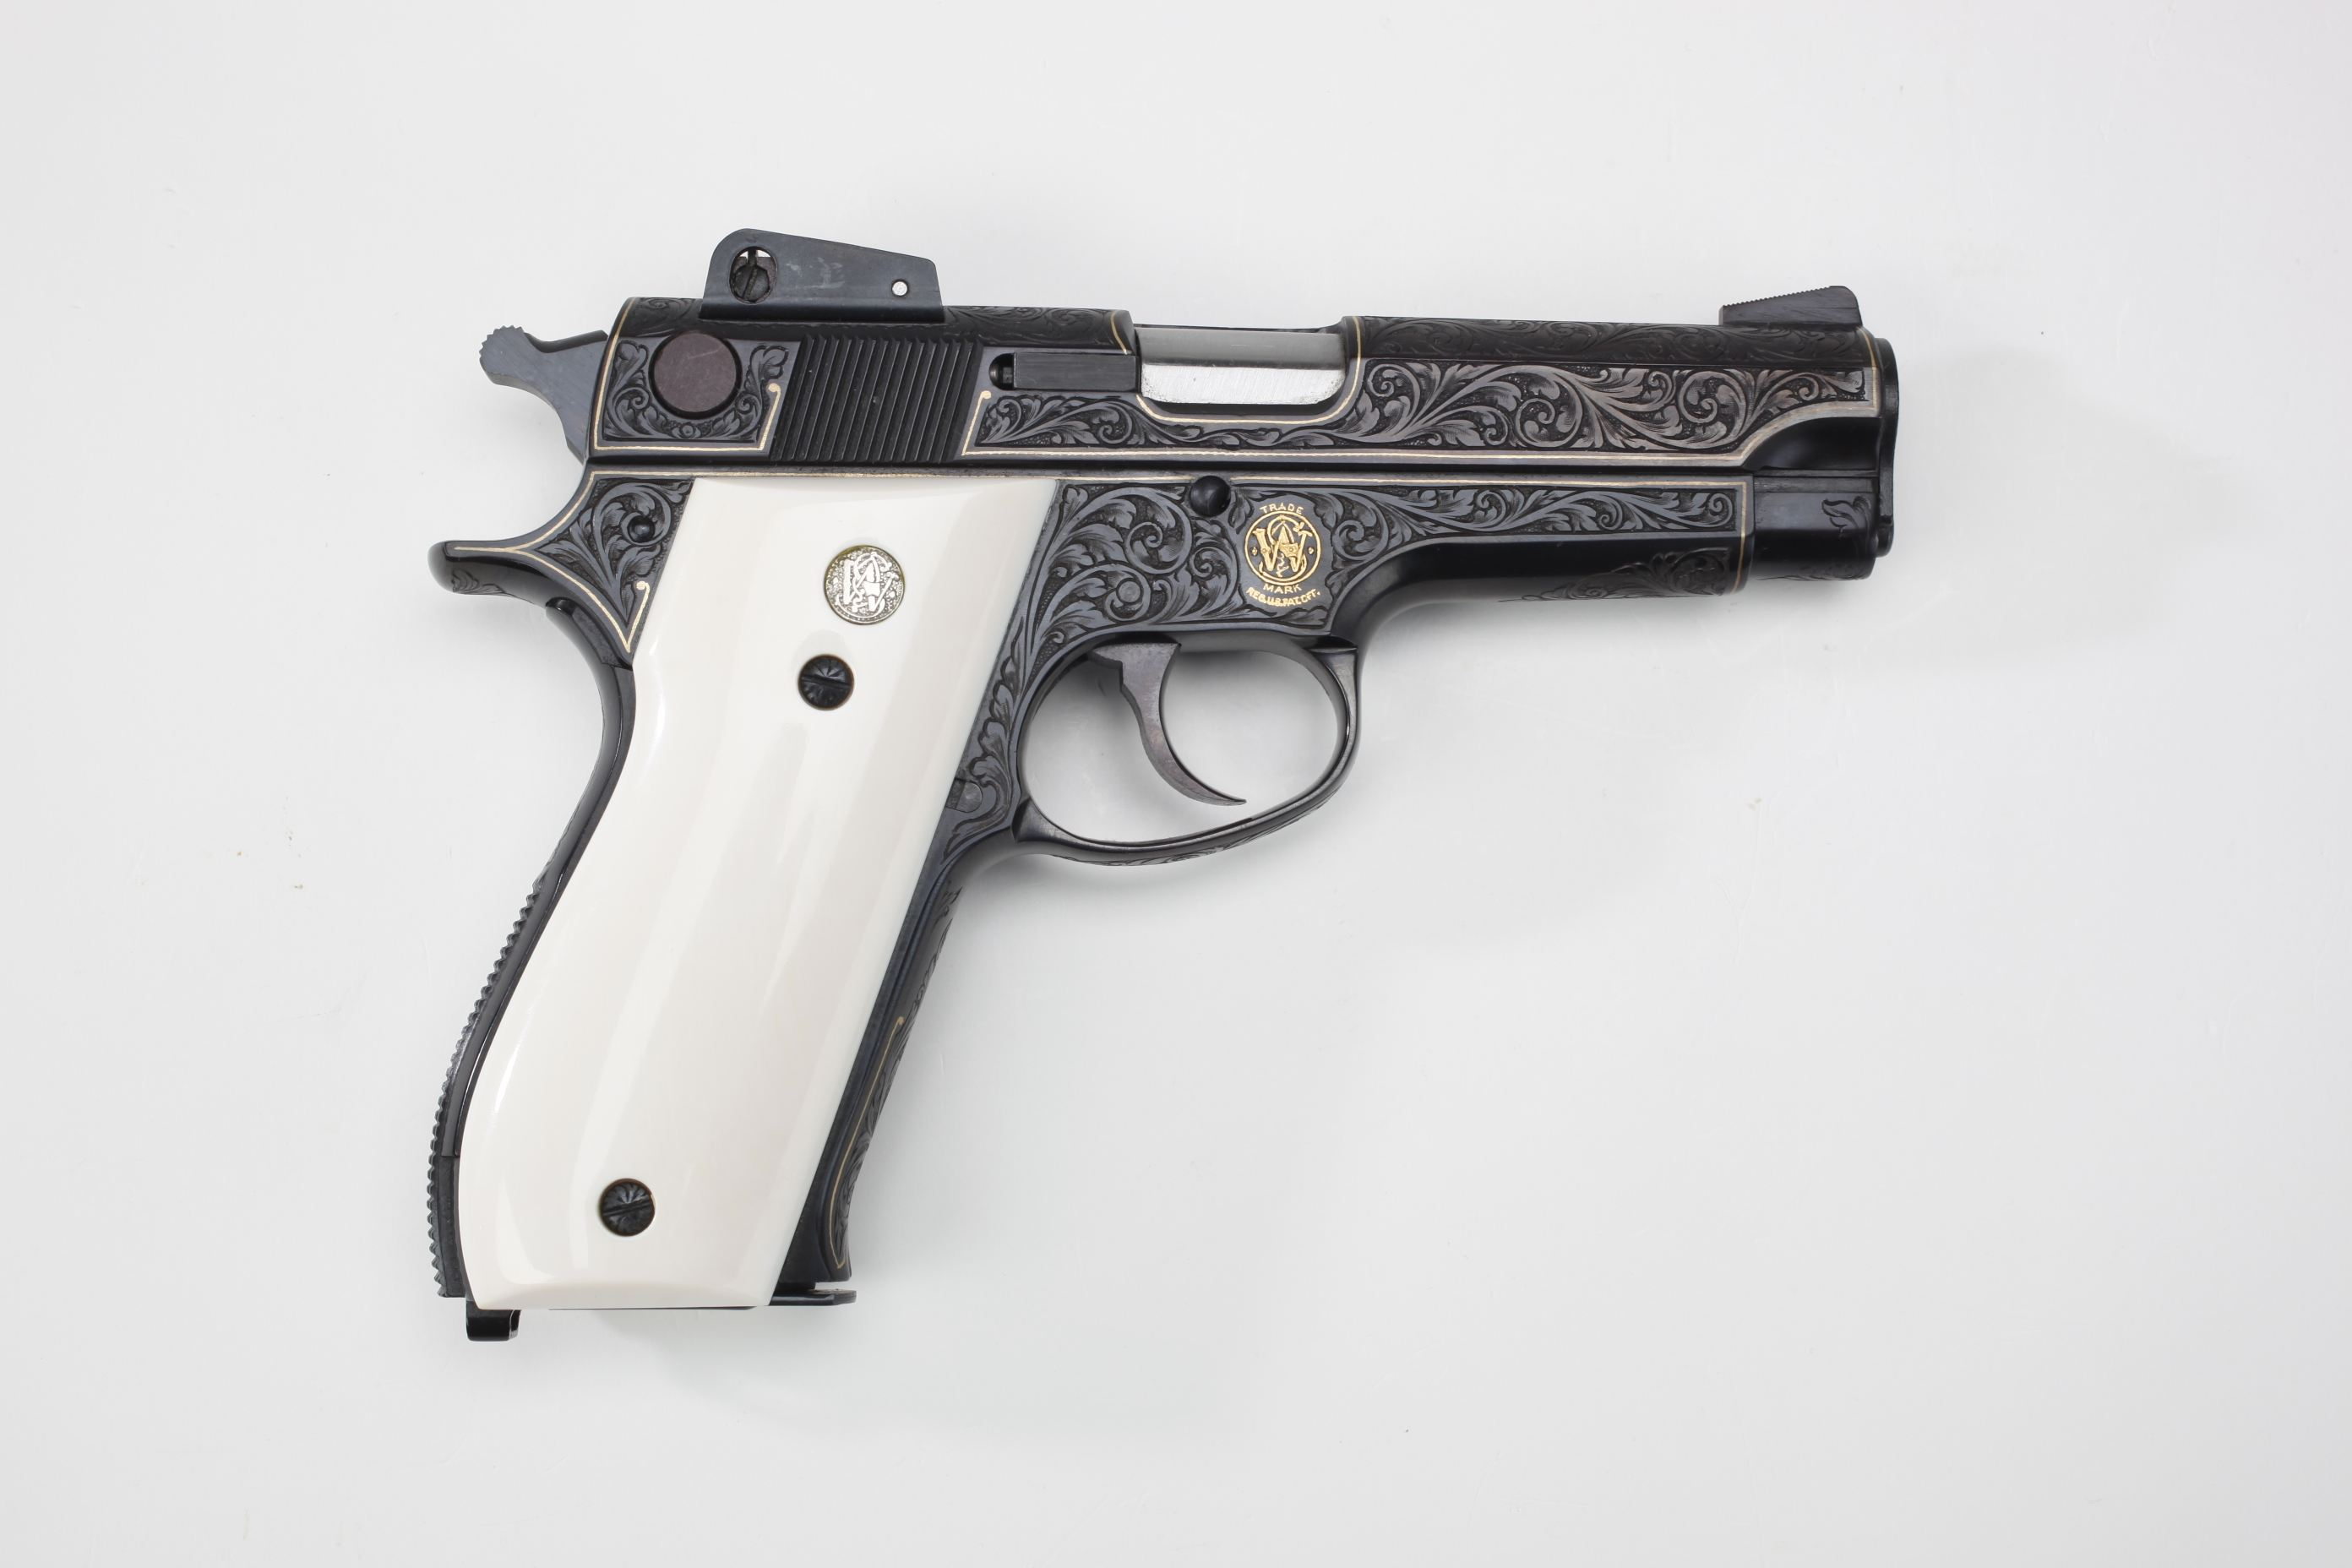 Smith & Wesson (Springfield, MA) Model 539 Semi-Automatic Pistol